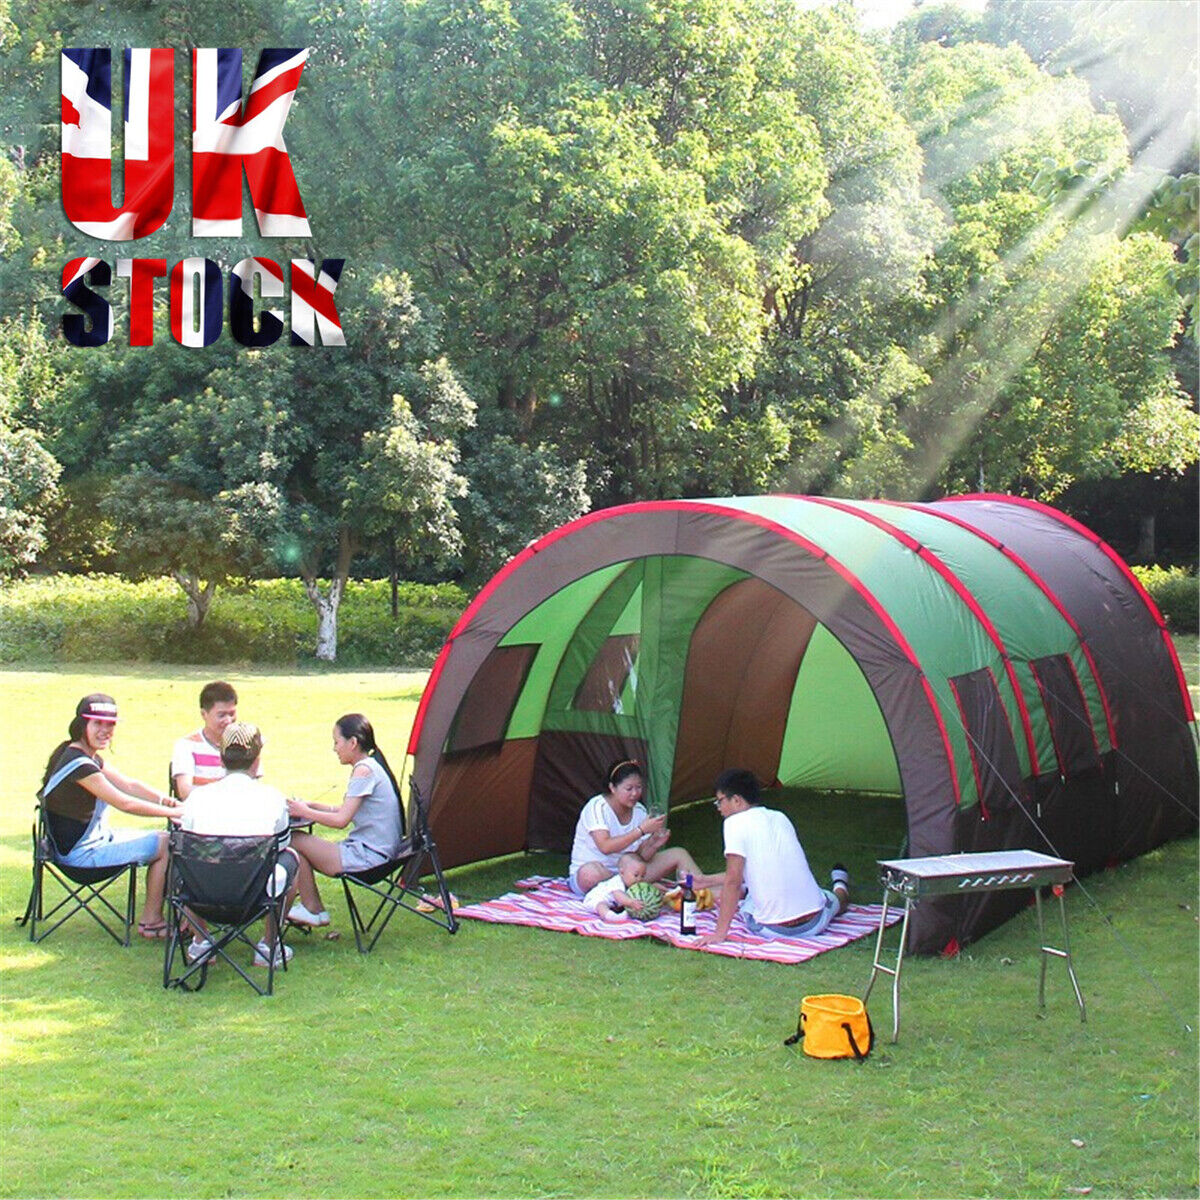 8 10 People Large Waterproof Group Family Festival Camping Outdoor Tunnel Tent